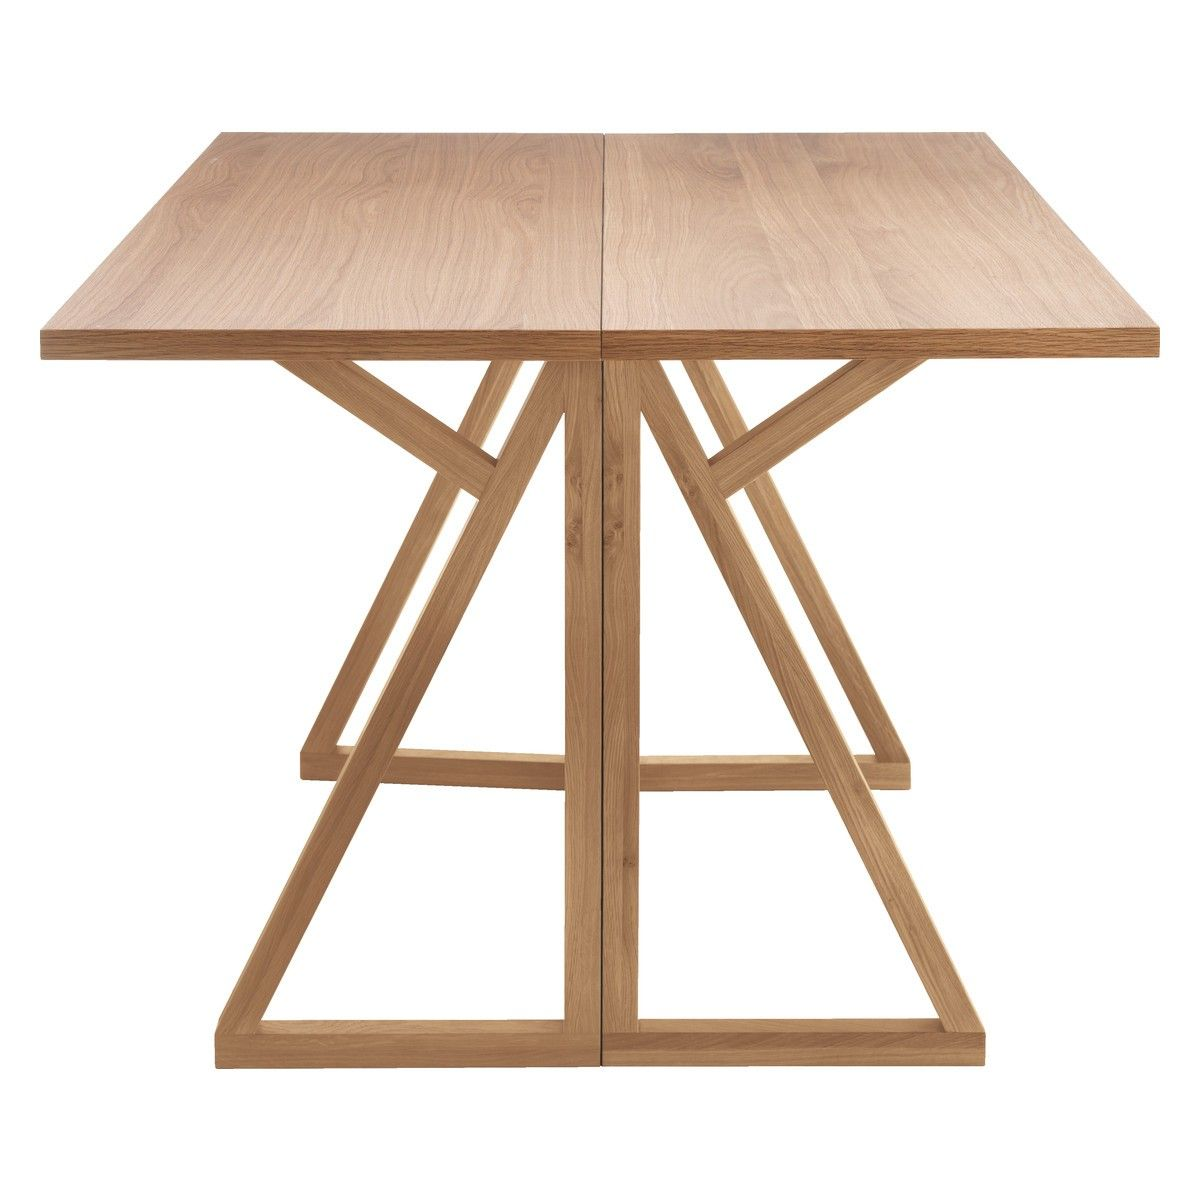 Folding Dining Table heath 2-4 seat oak folding dining table | solid oak, construction